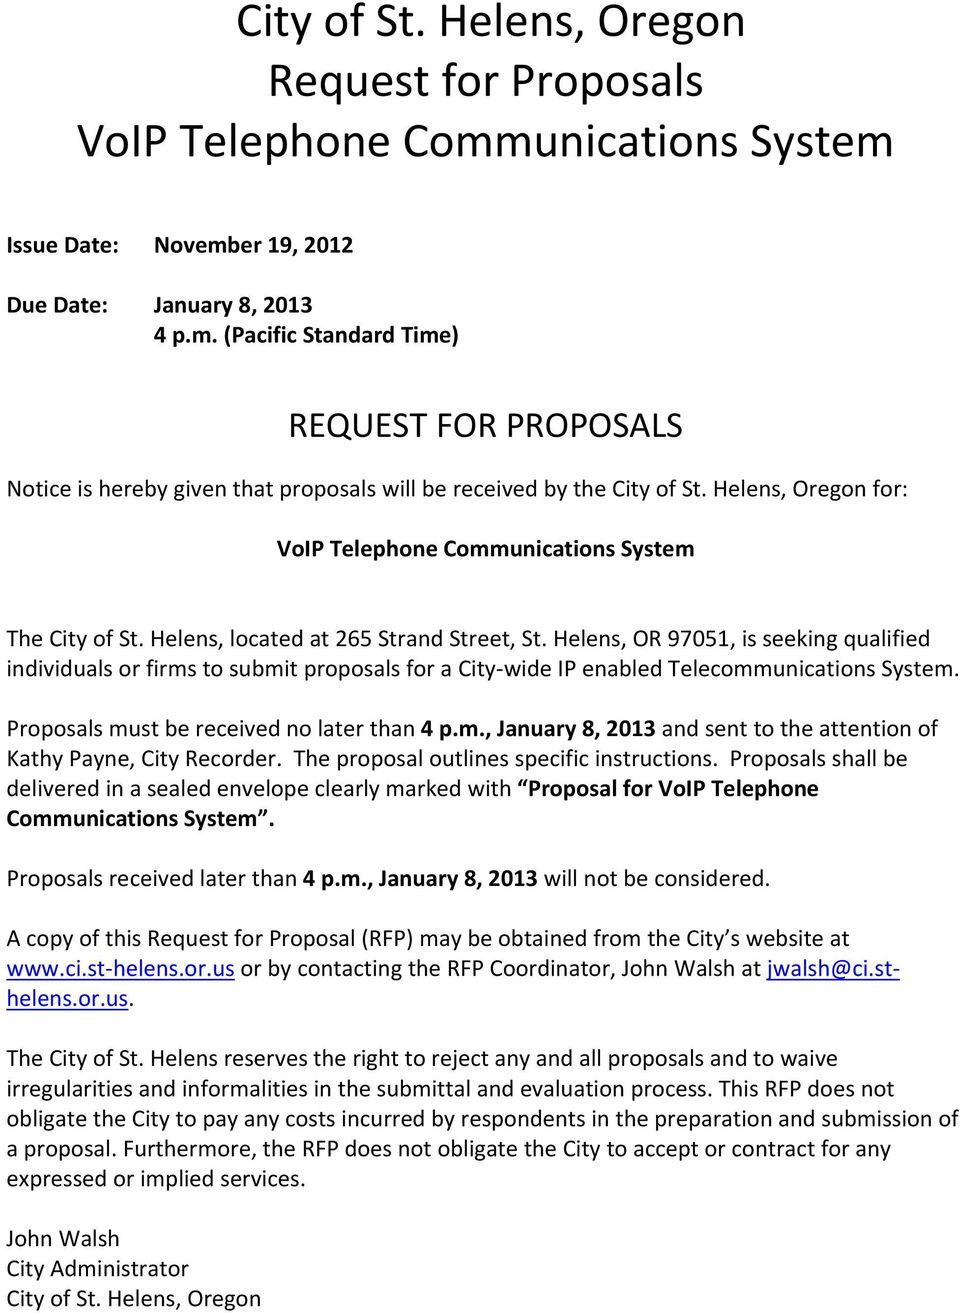 Helens, OR 97051, is seeking qualified individuals or firms to submit proposals for a City wide IP enabled Telecommunications System. Proposals must be received no later than 4 p.m., January 8, 2013 and sent to the attention of Kathy Payne, City Recorder.